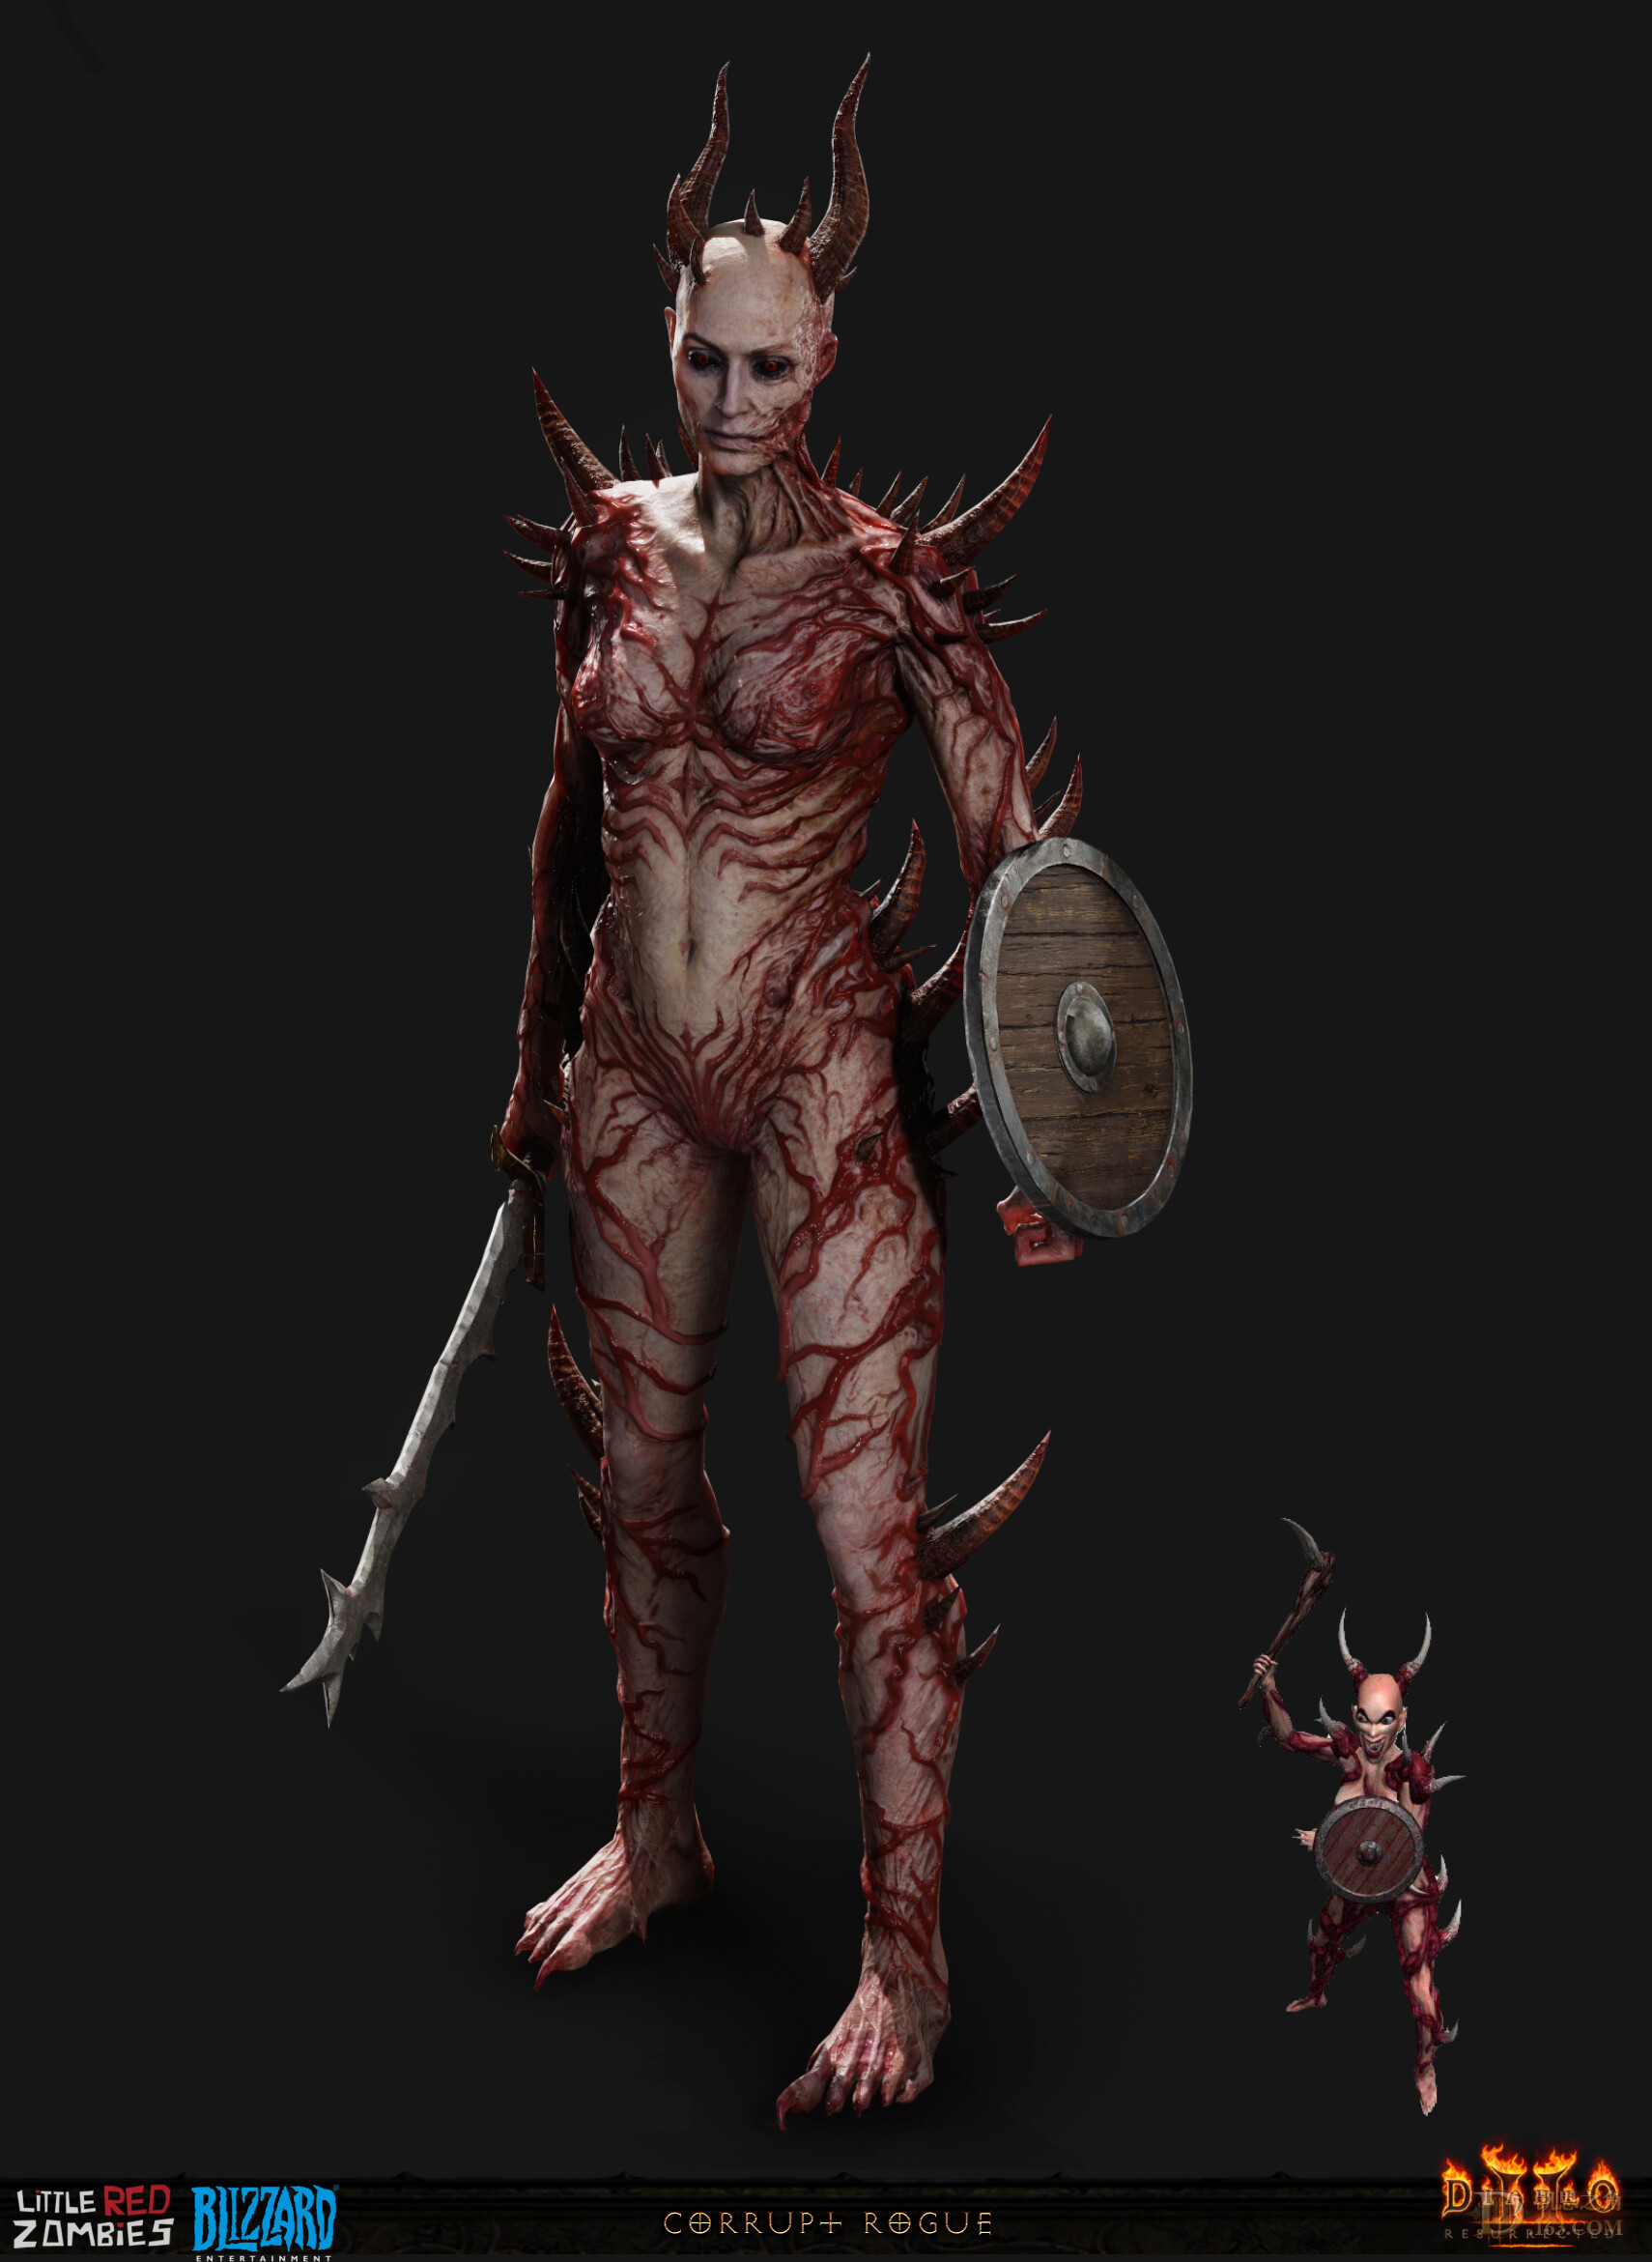 little-red-zombies-corruptrogueheavy-textured-compare.jpg